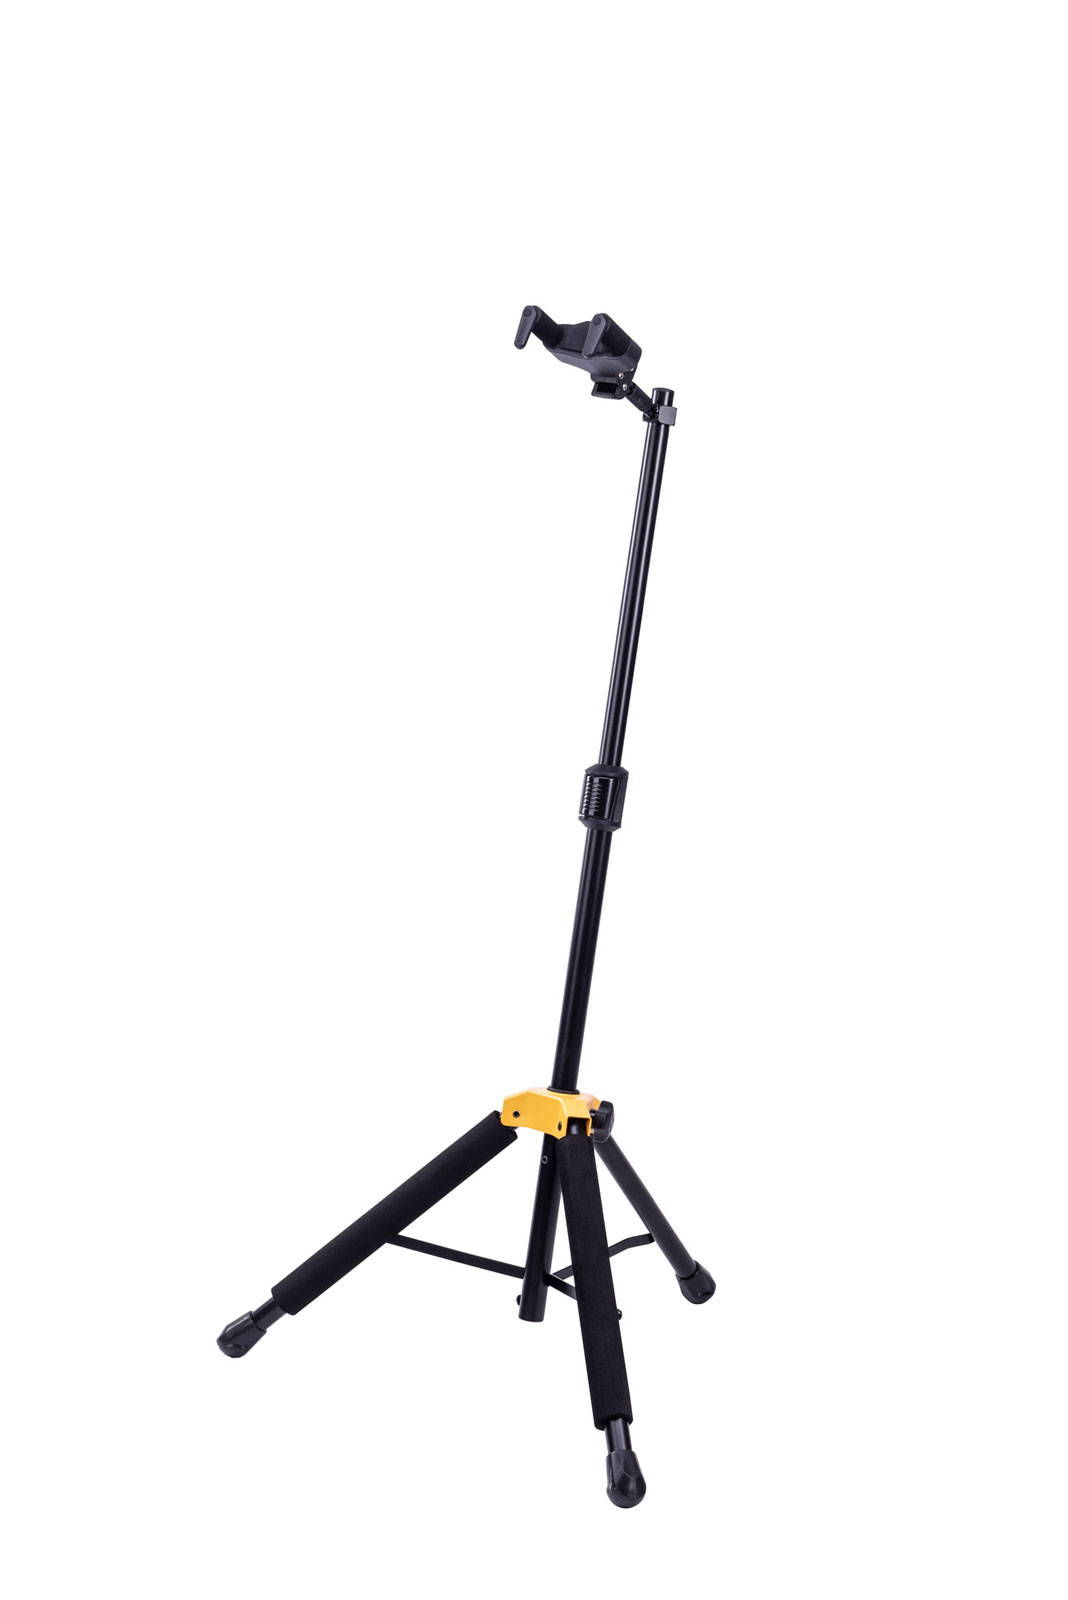 Hercules Stands Support Guitare Gs415b-plus : Reconditionné